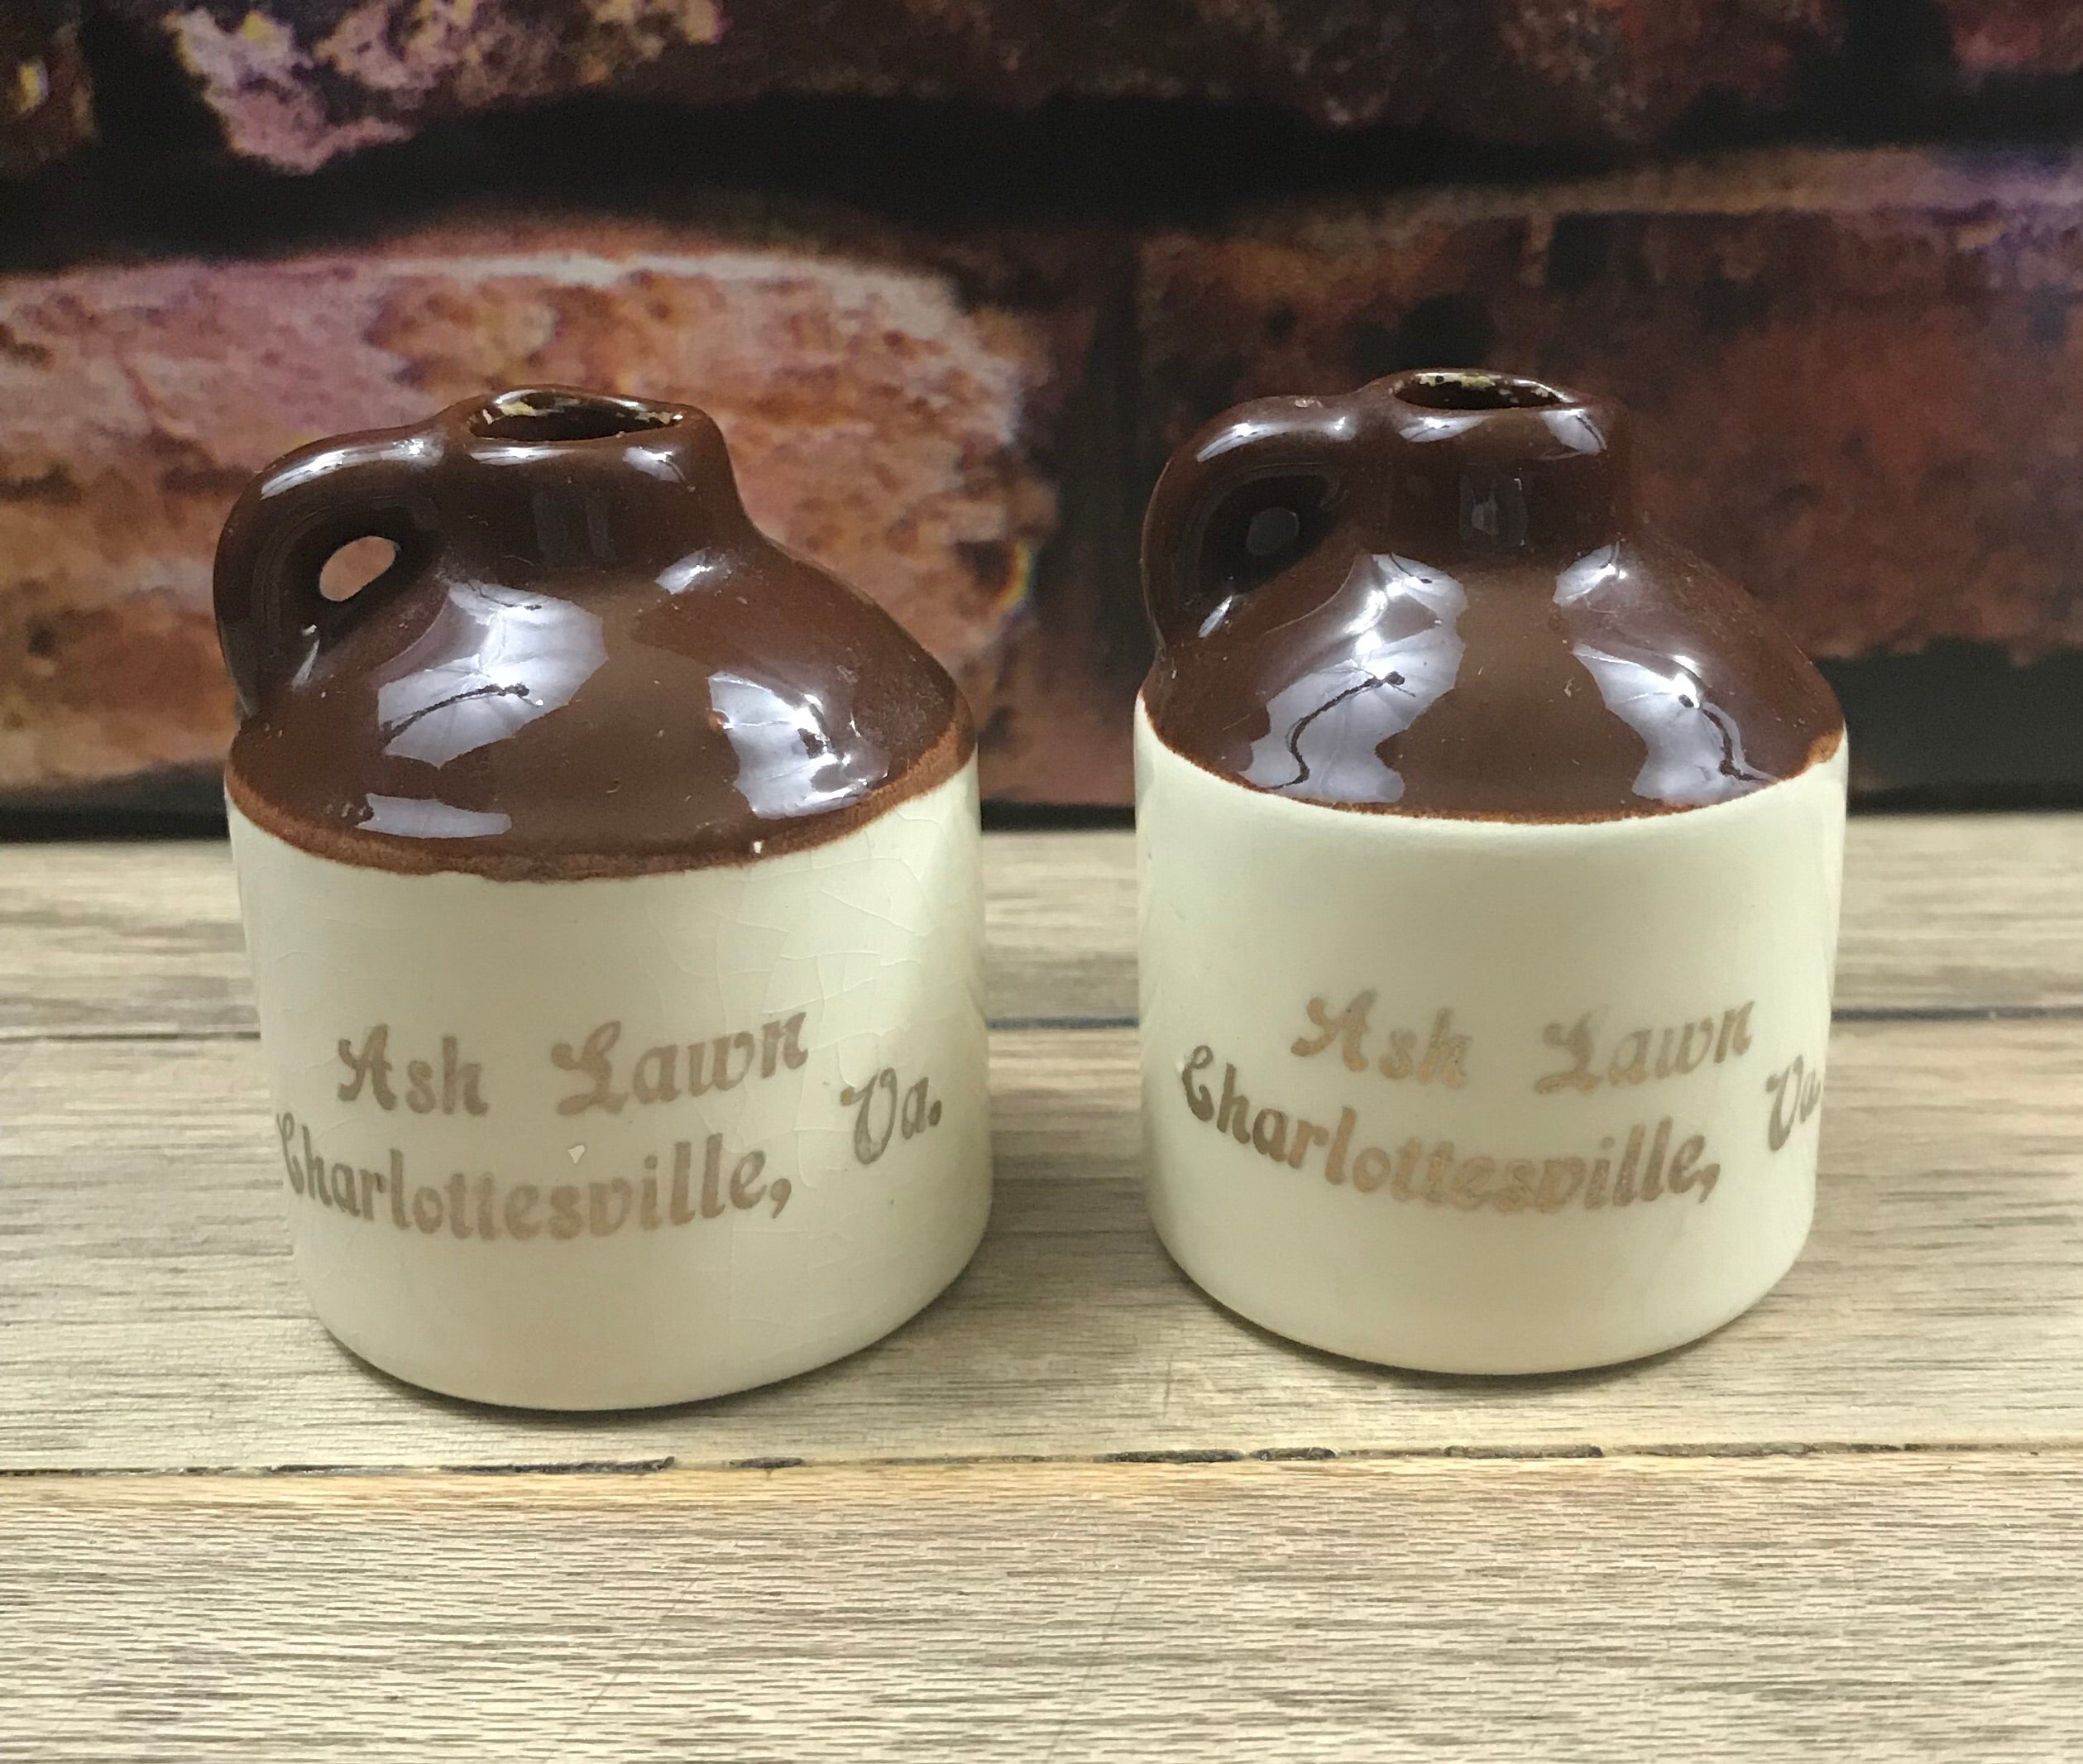 "Vintage Pottery Jugs ""Ash Lawn-Charlottesville VA, 22k Gold Hand Decorated Salt & Pepper Shakers-1980's"